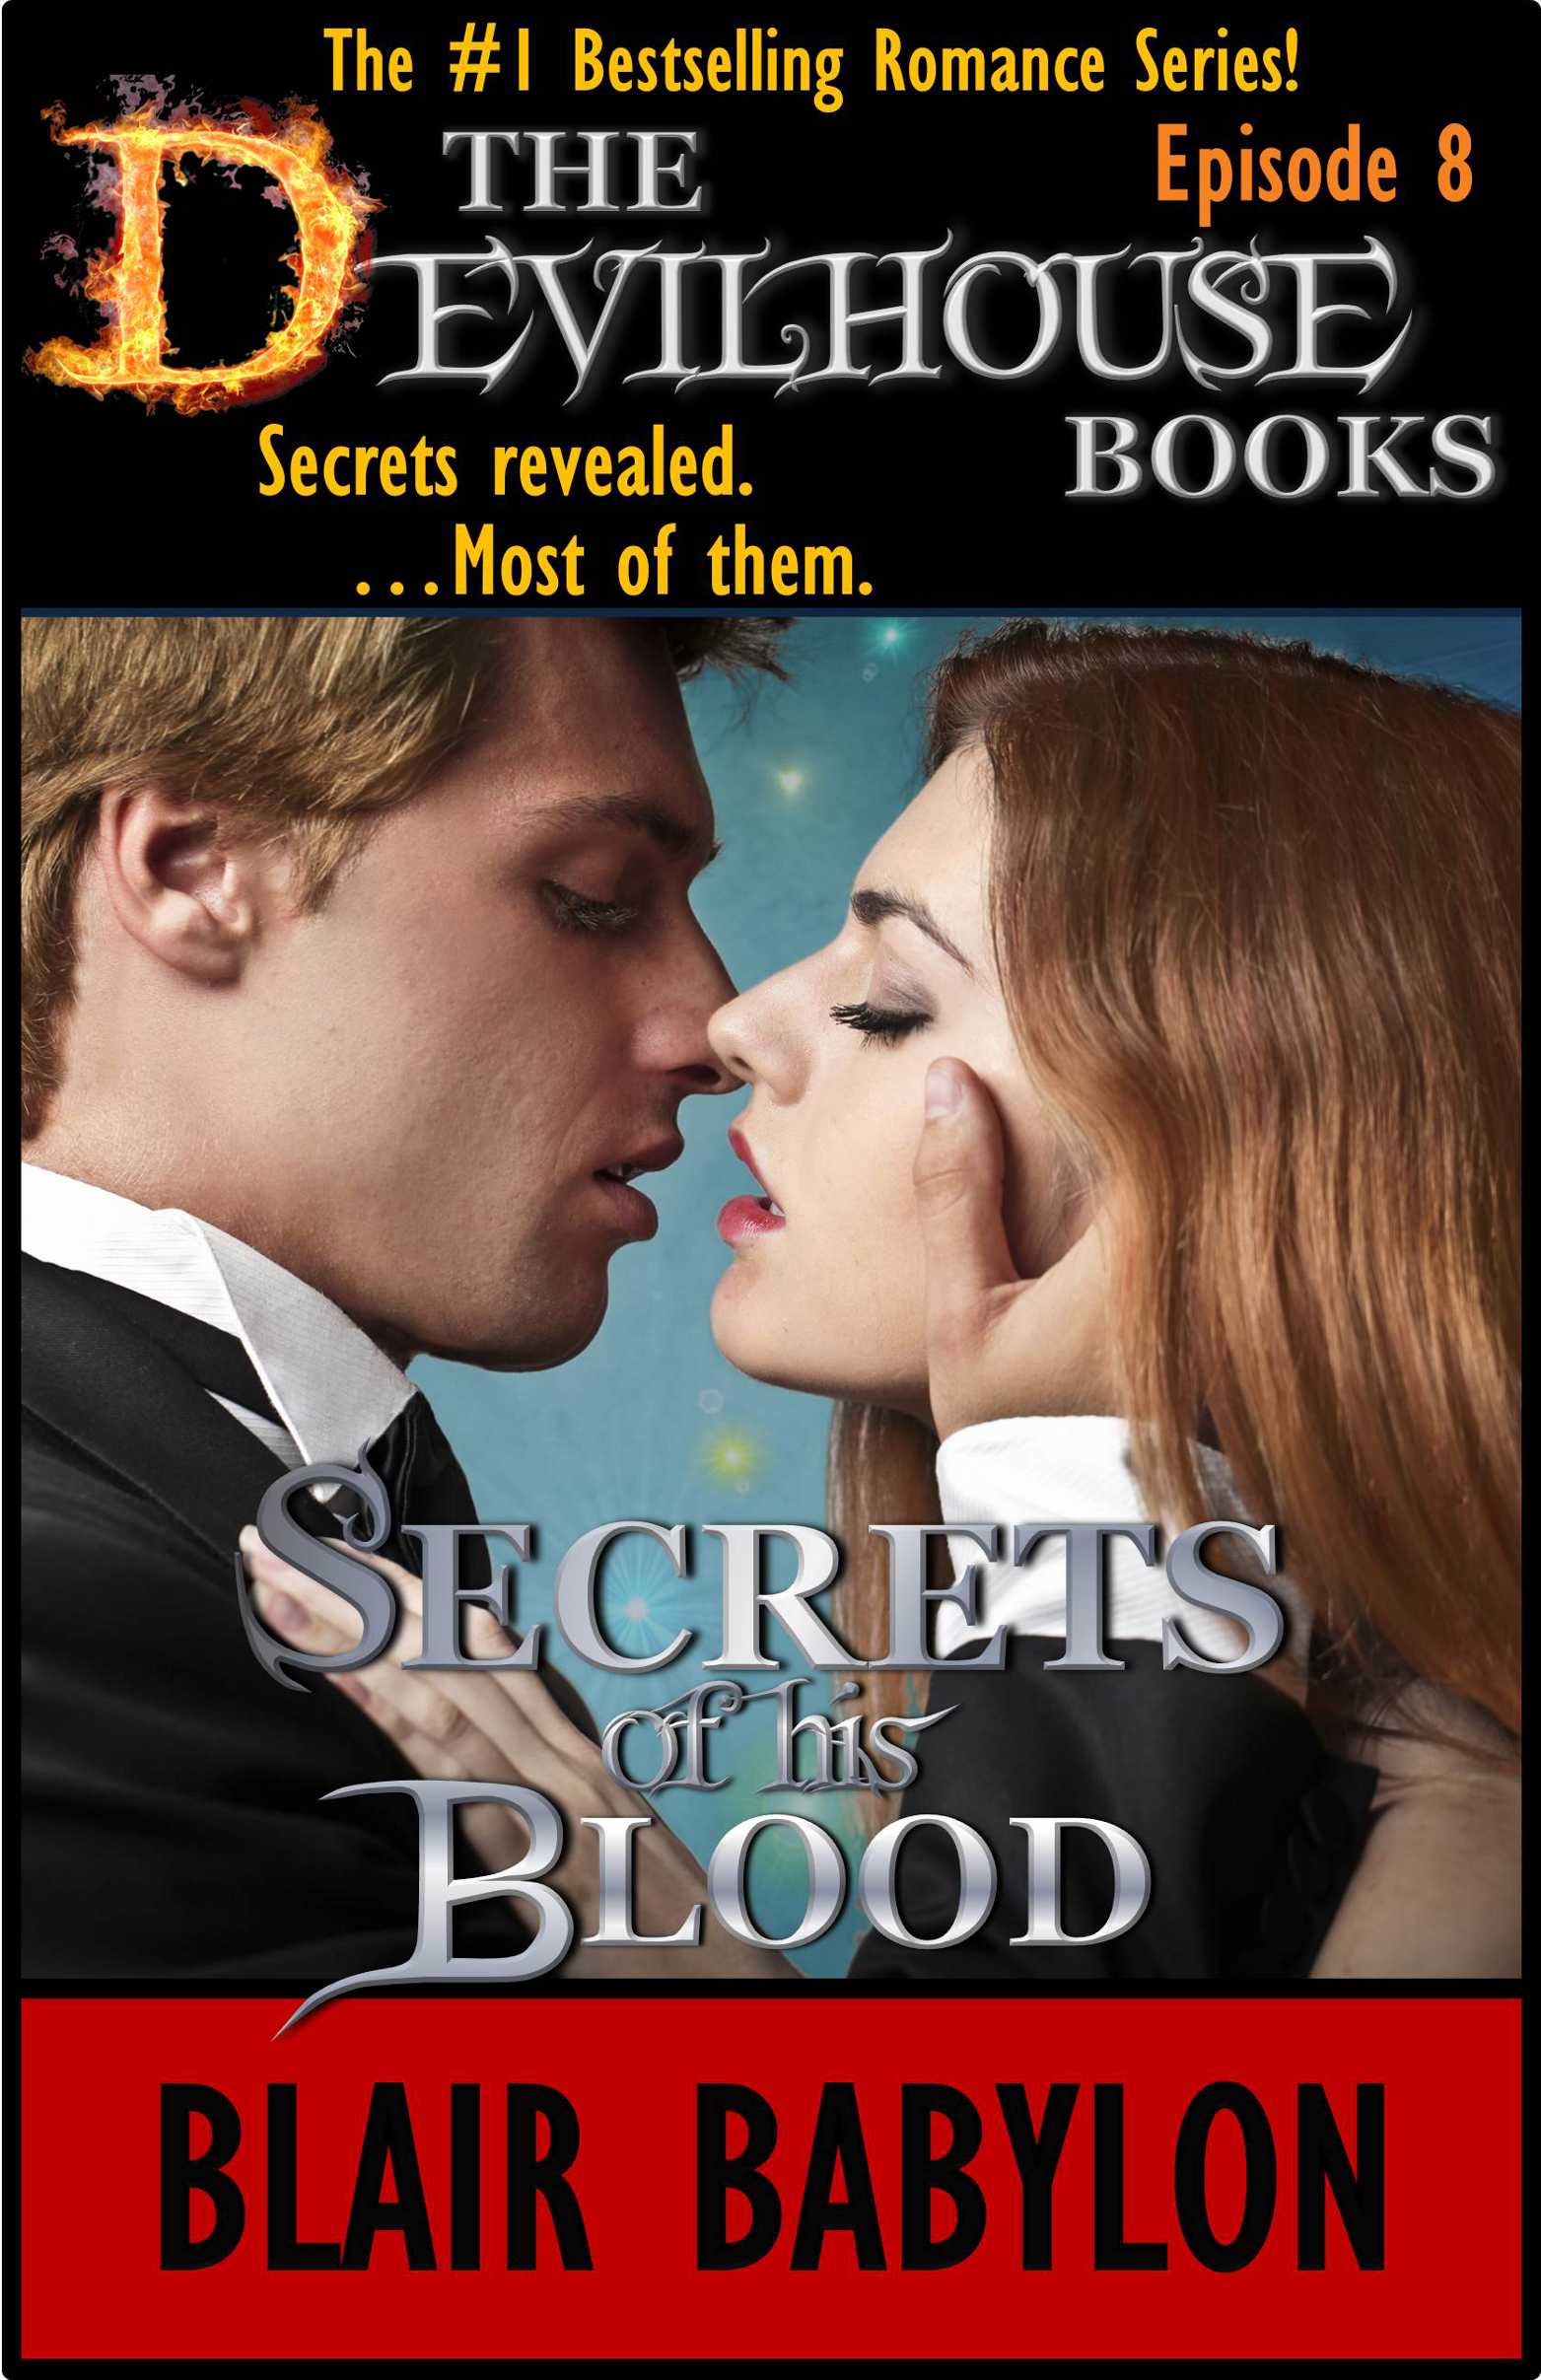 Blair Babylon - Secrets of his Blood: An Erotic Romance, Episode 8 of The Devilhouse Books